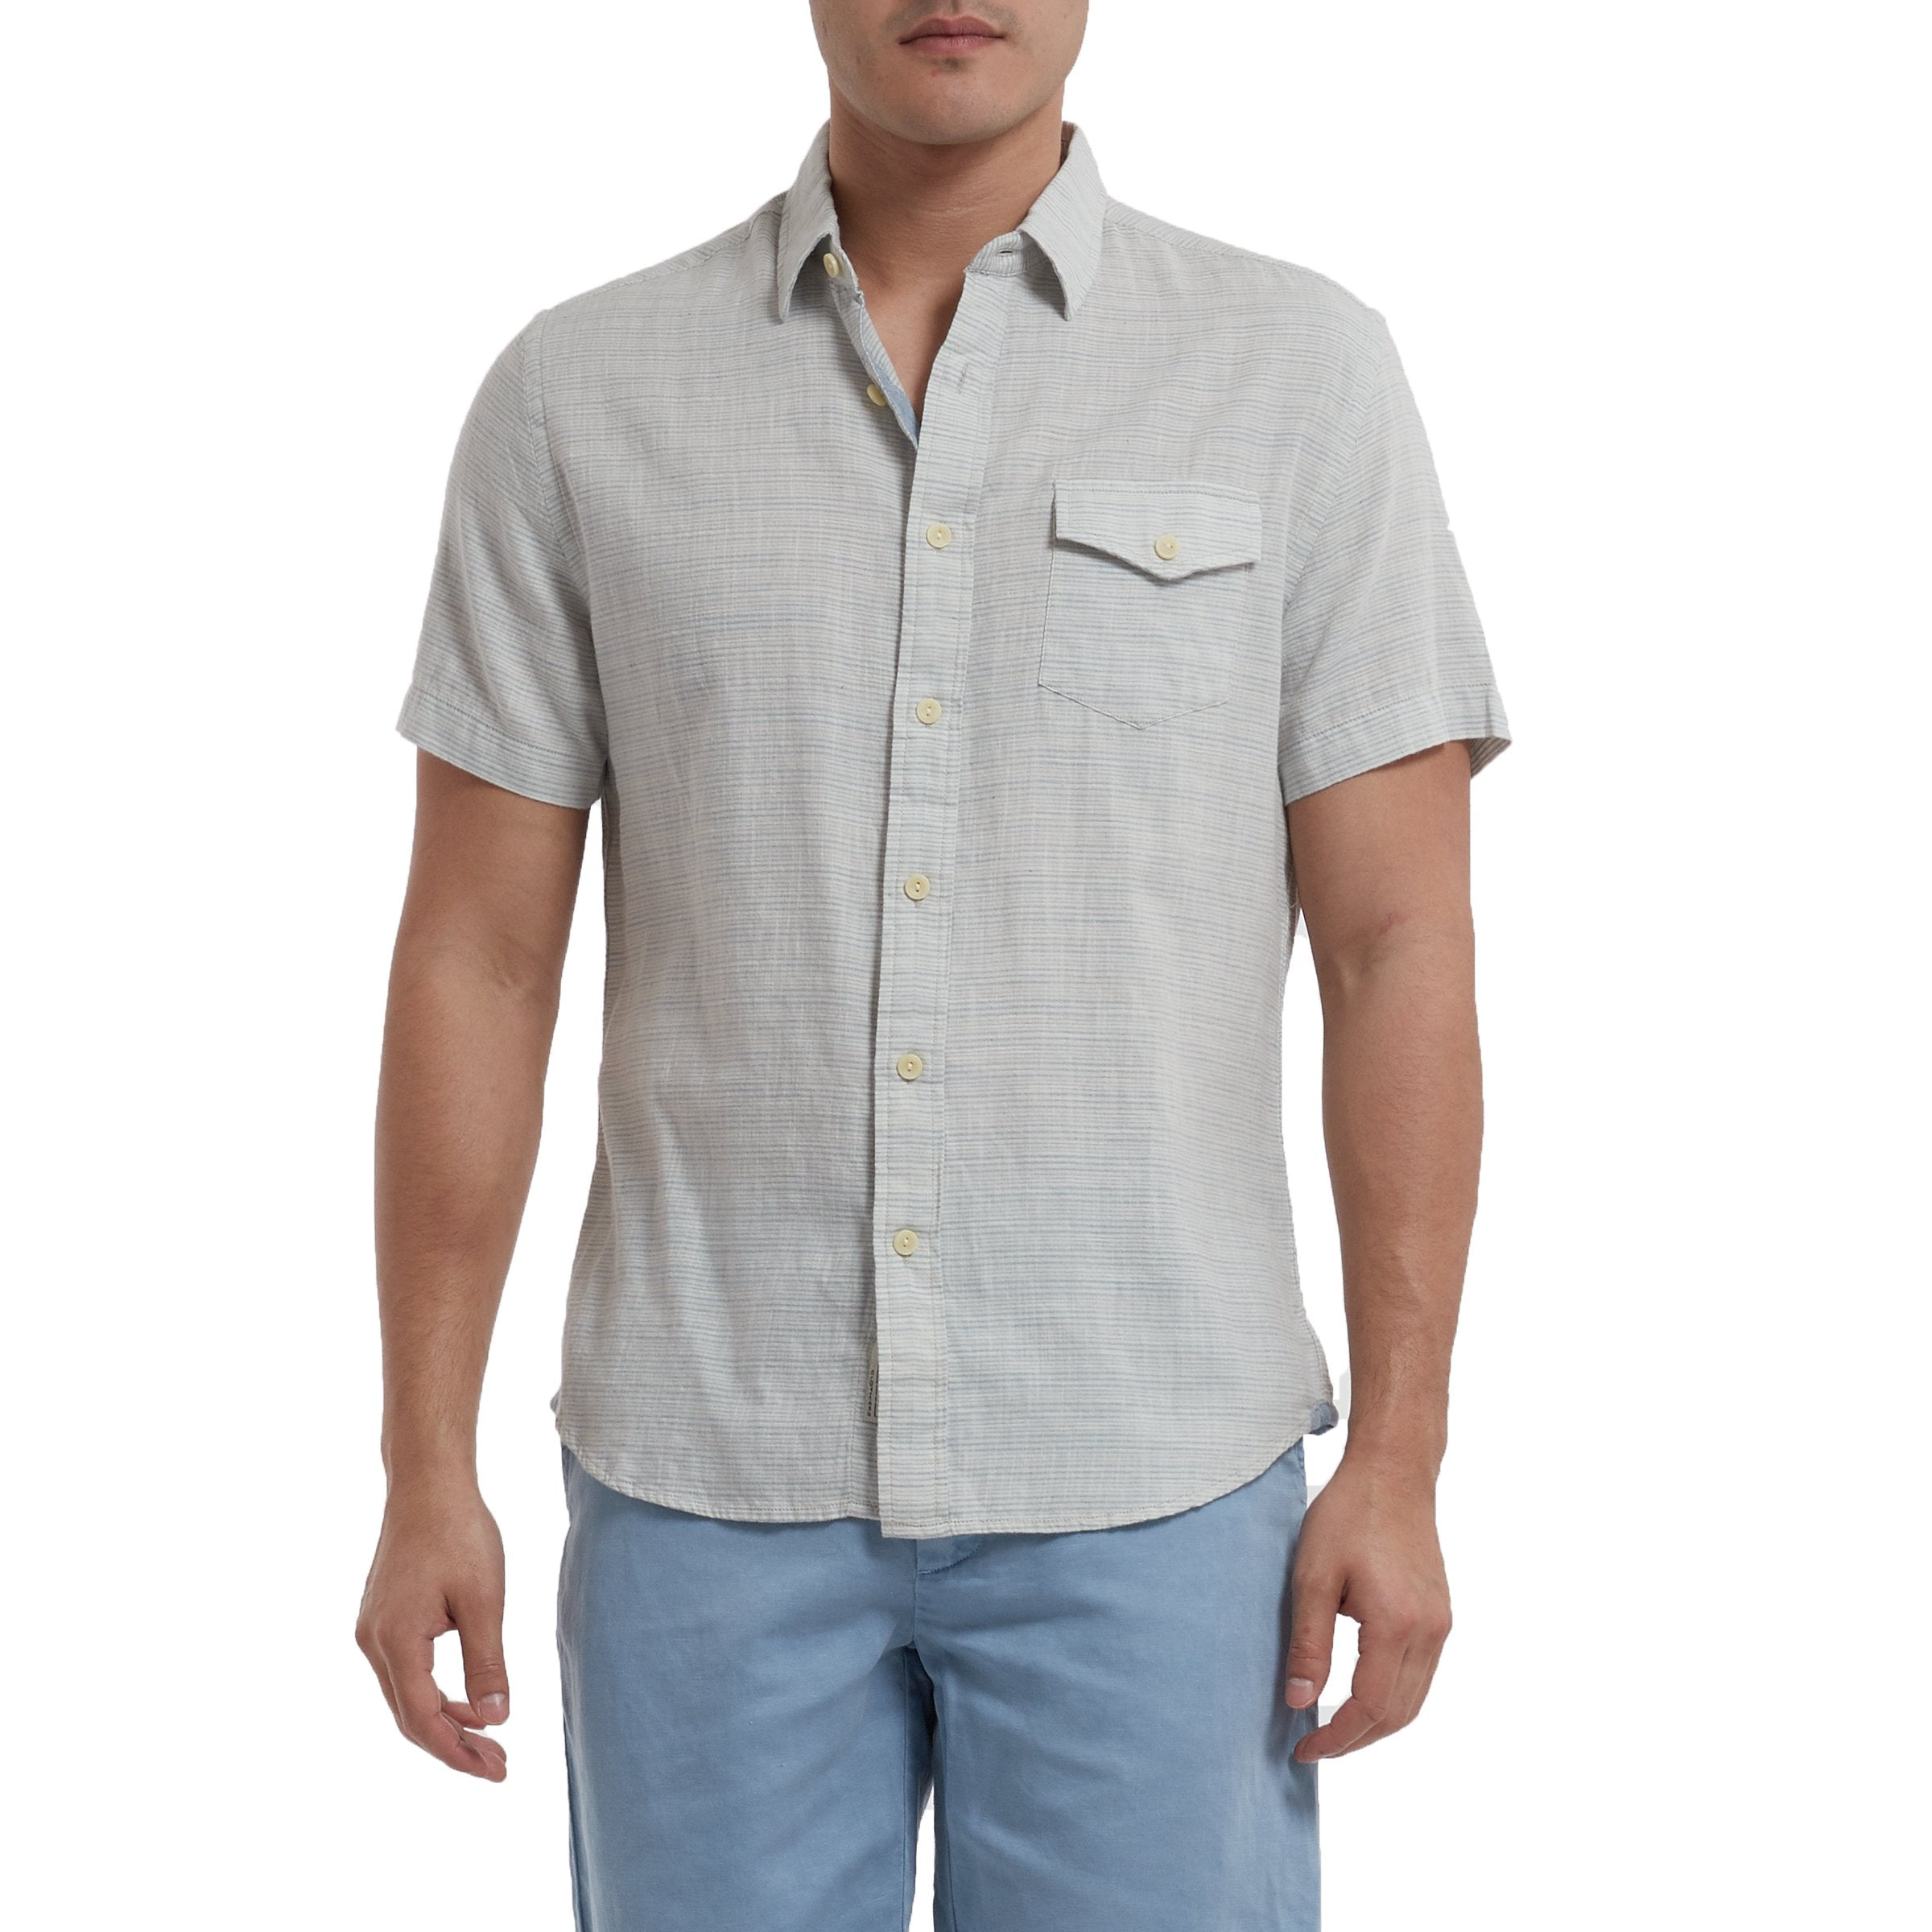 Horizon Twill Shirt